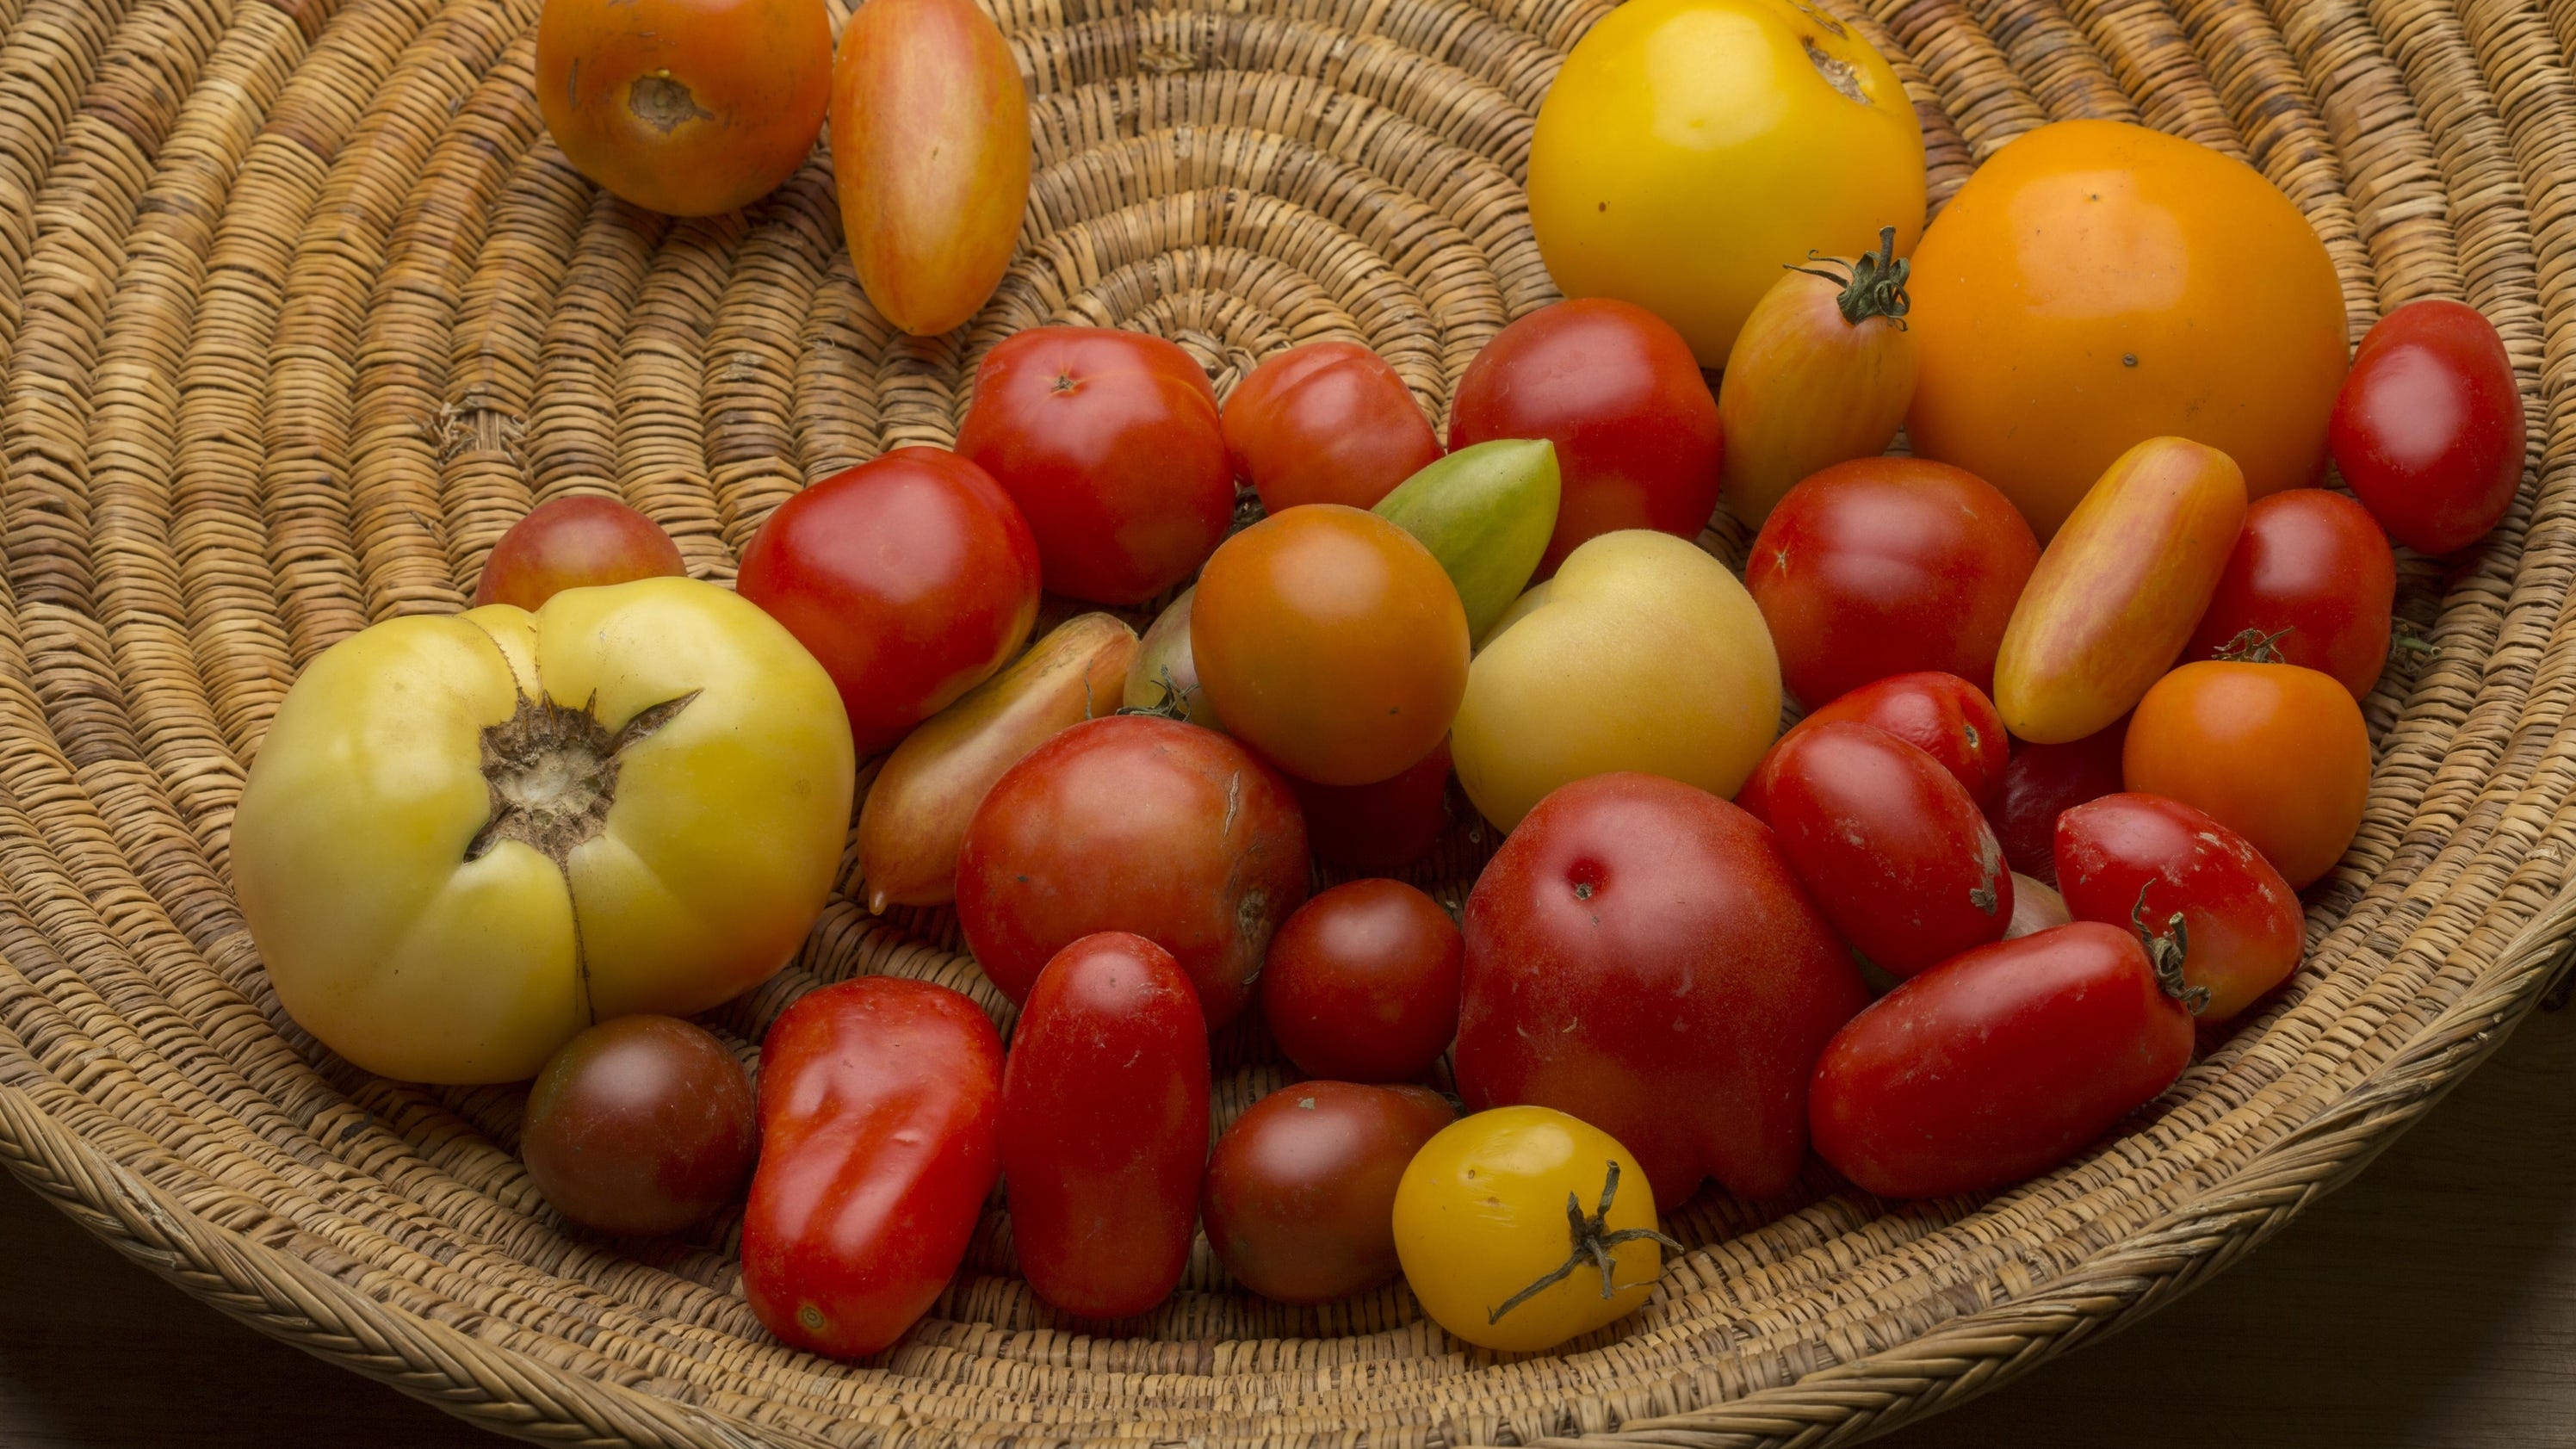 Produce That Can T Sit Out At Room Temperature